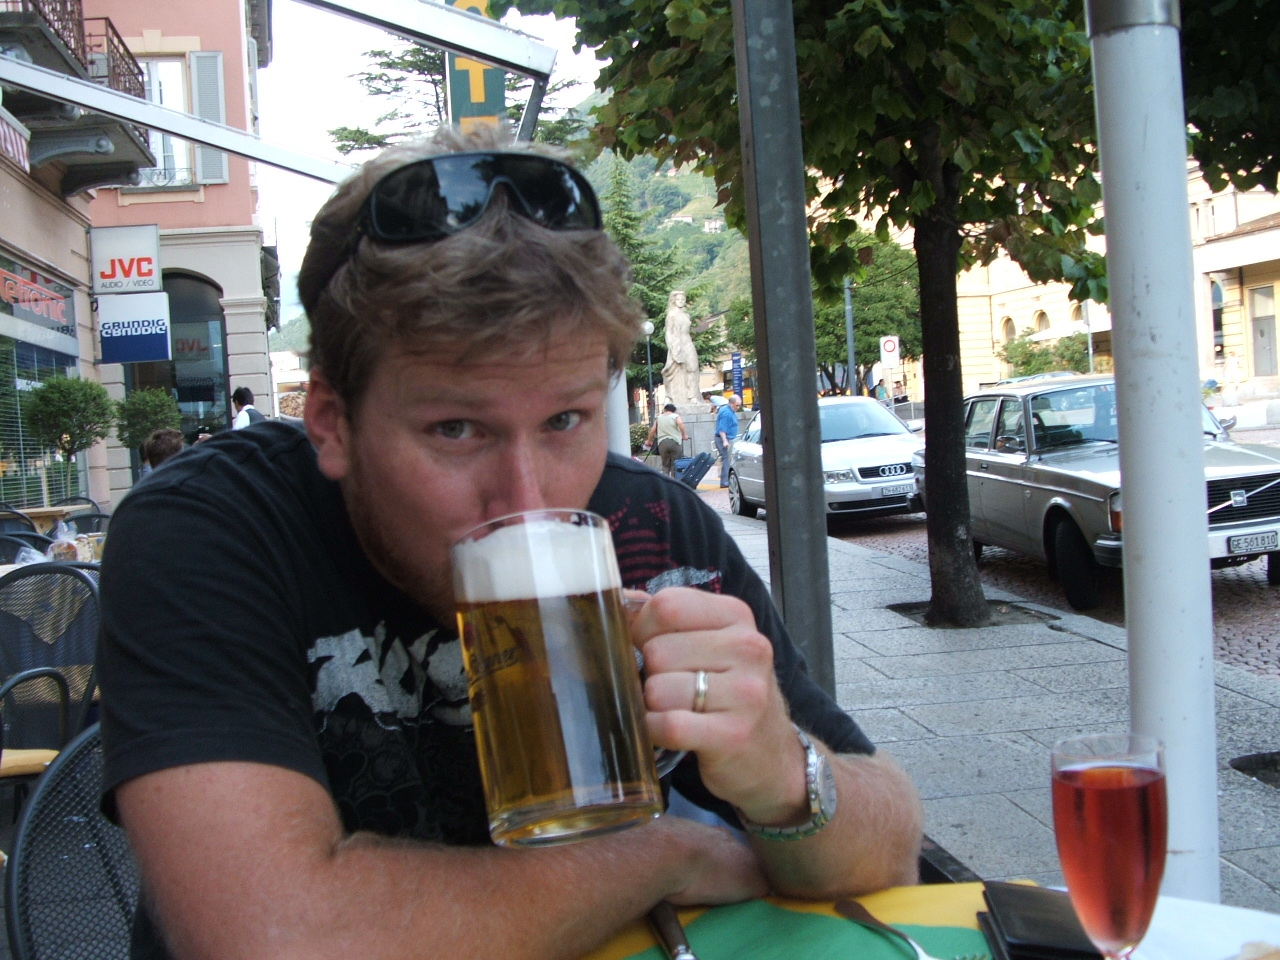 It's tragic but true - you should keep your beer drinking until your destination!